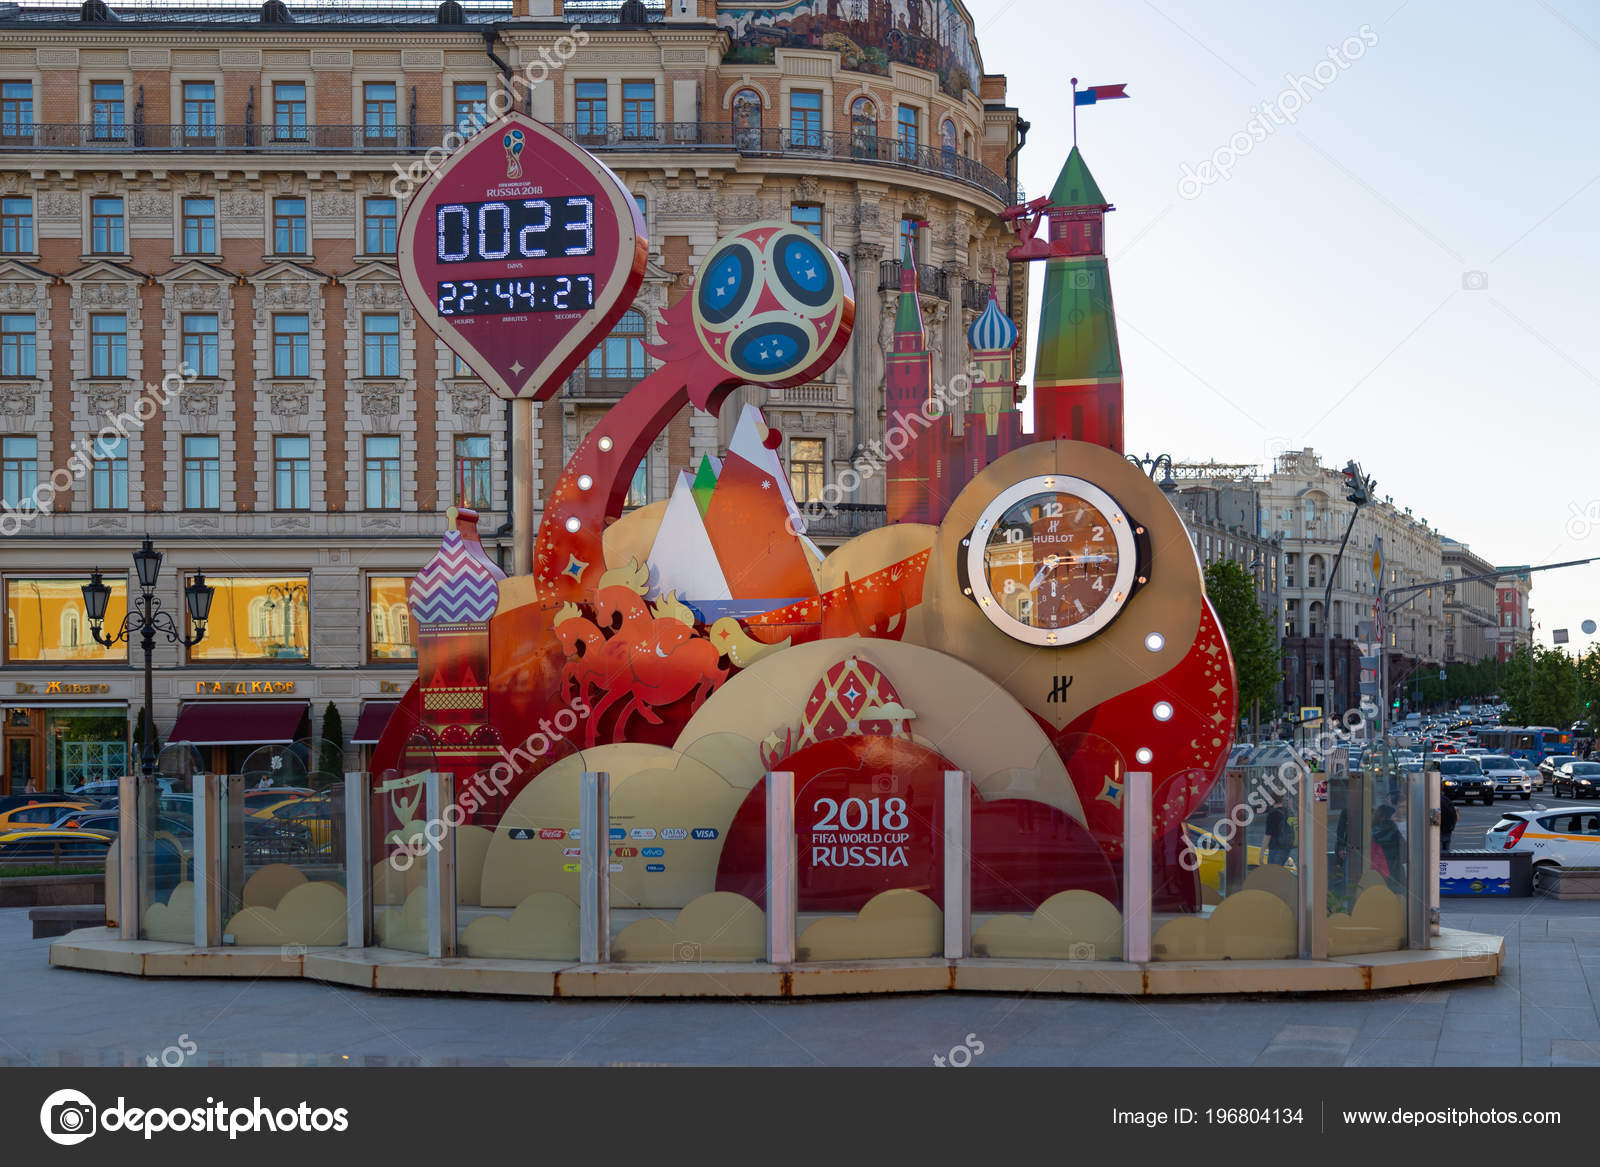 Moscow, russia may 31, 2018: clock countdown to world cup-2018.